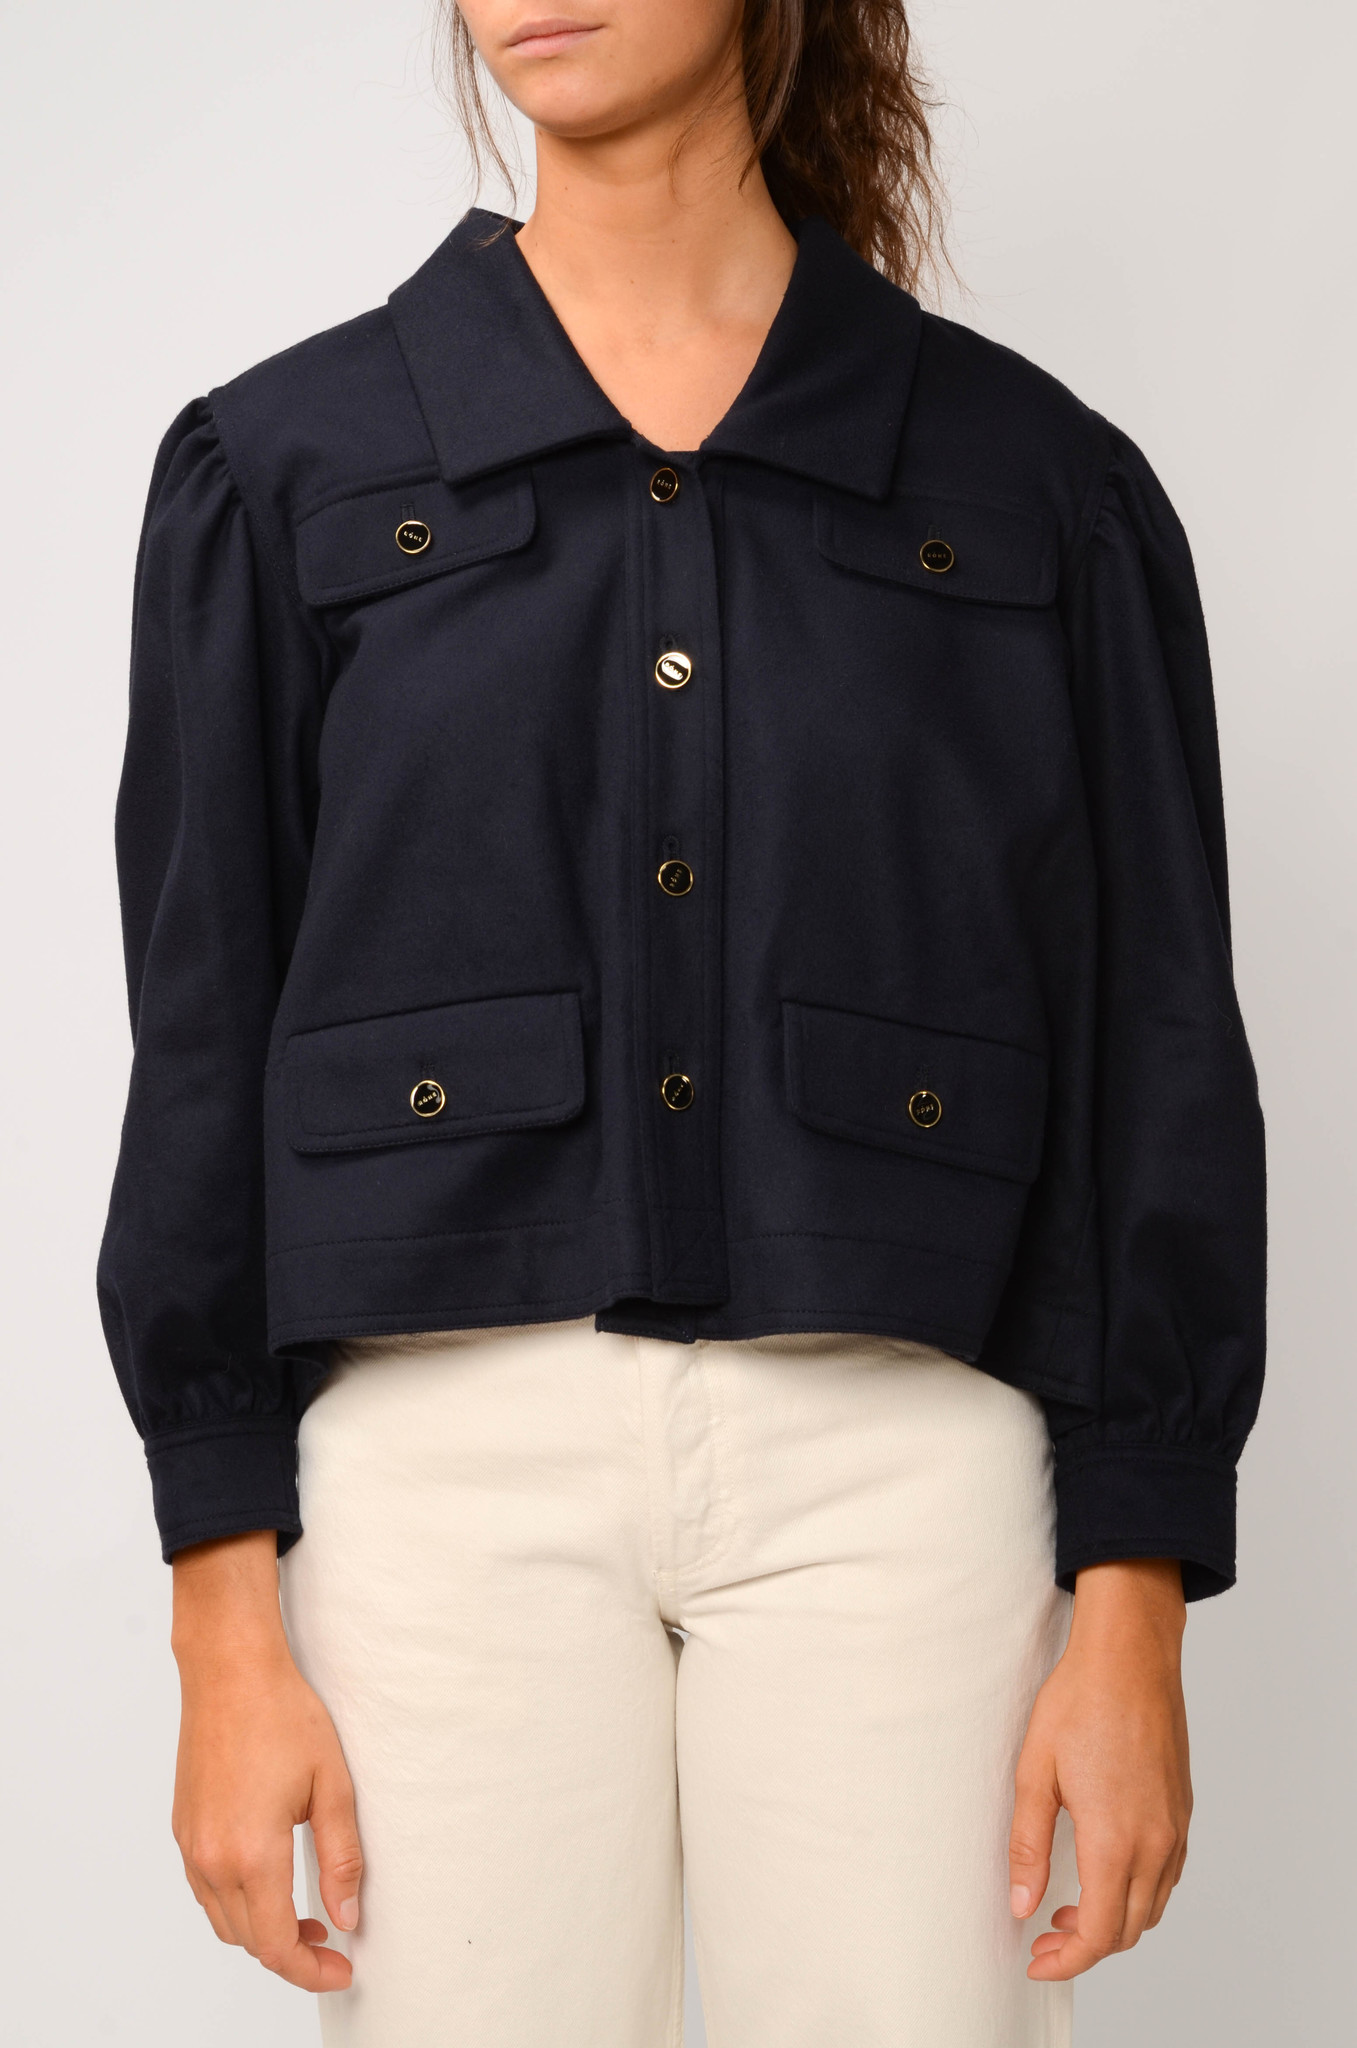 CATHERIN BLOUSE IN NAVY-1